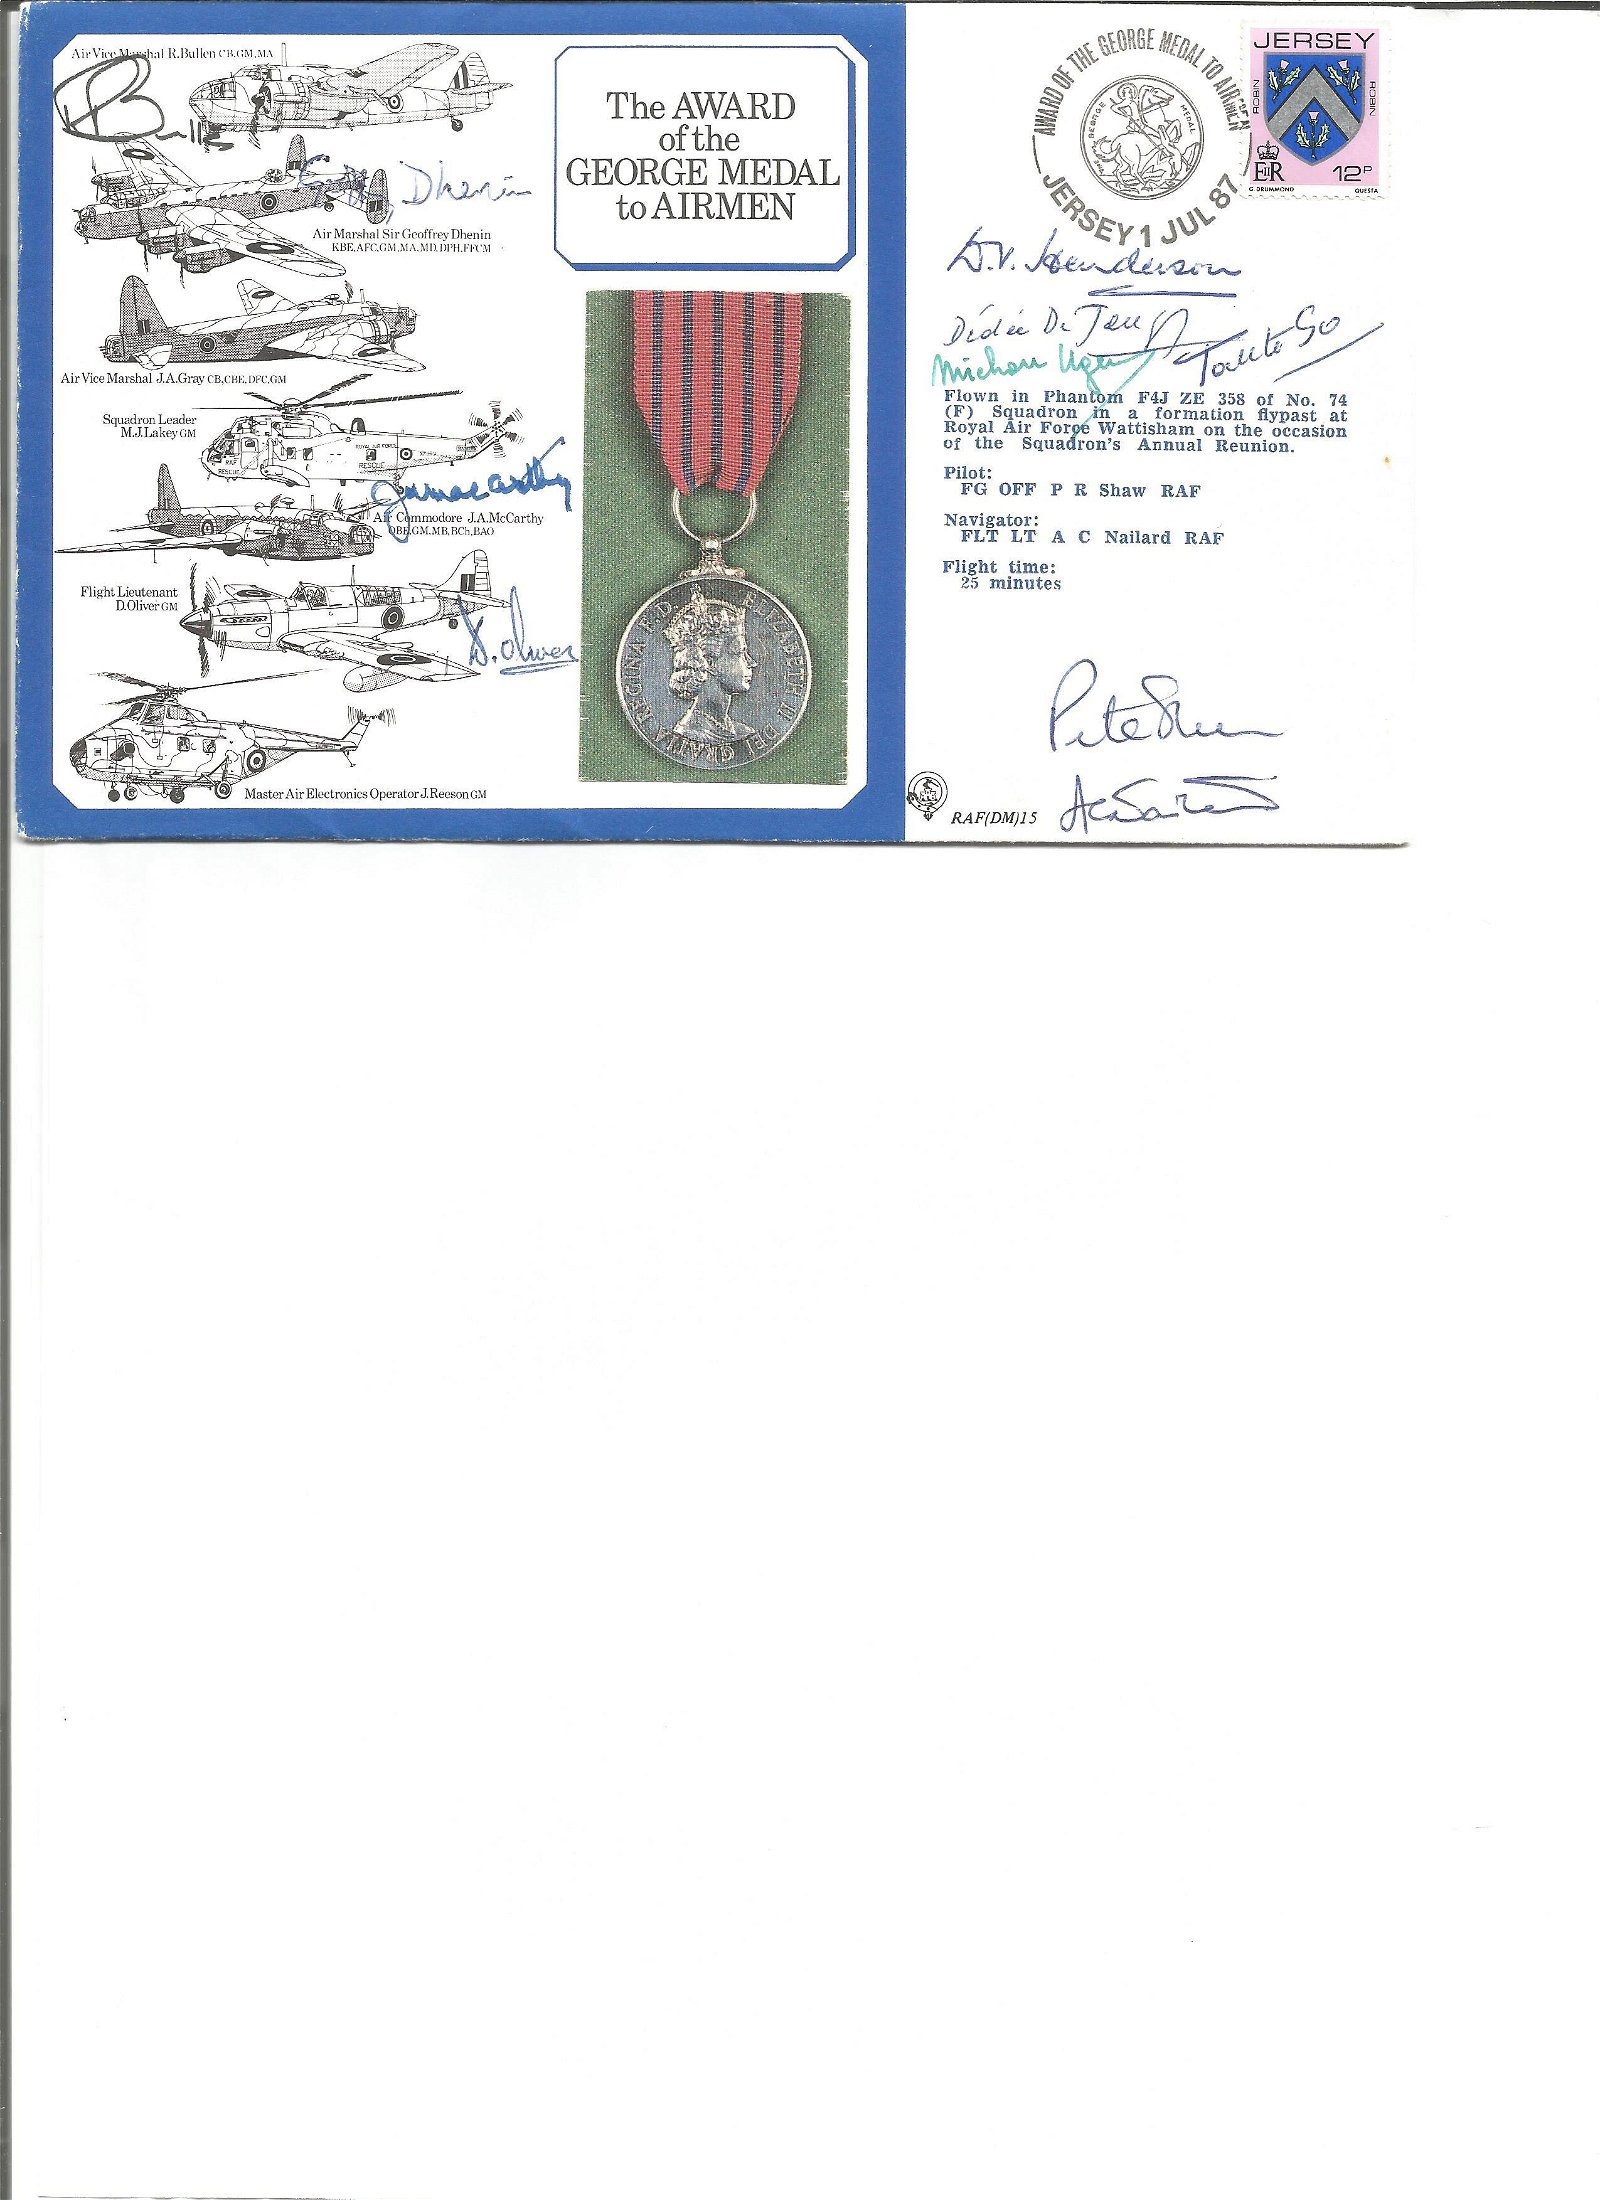 WW2 Award of George Medal to Airmen Medal cover signed